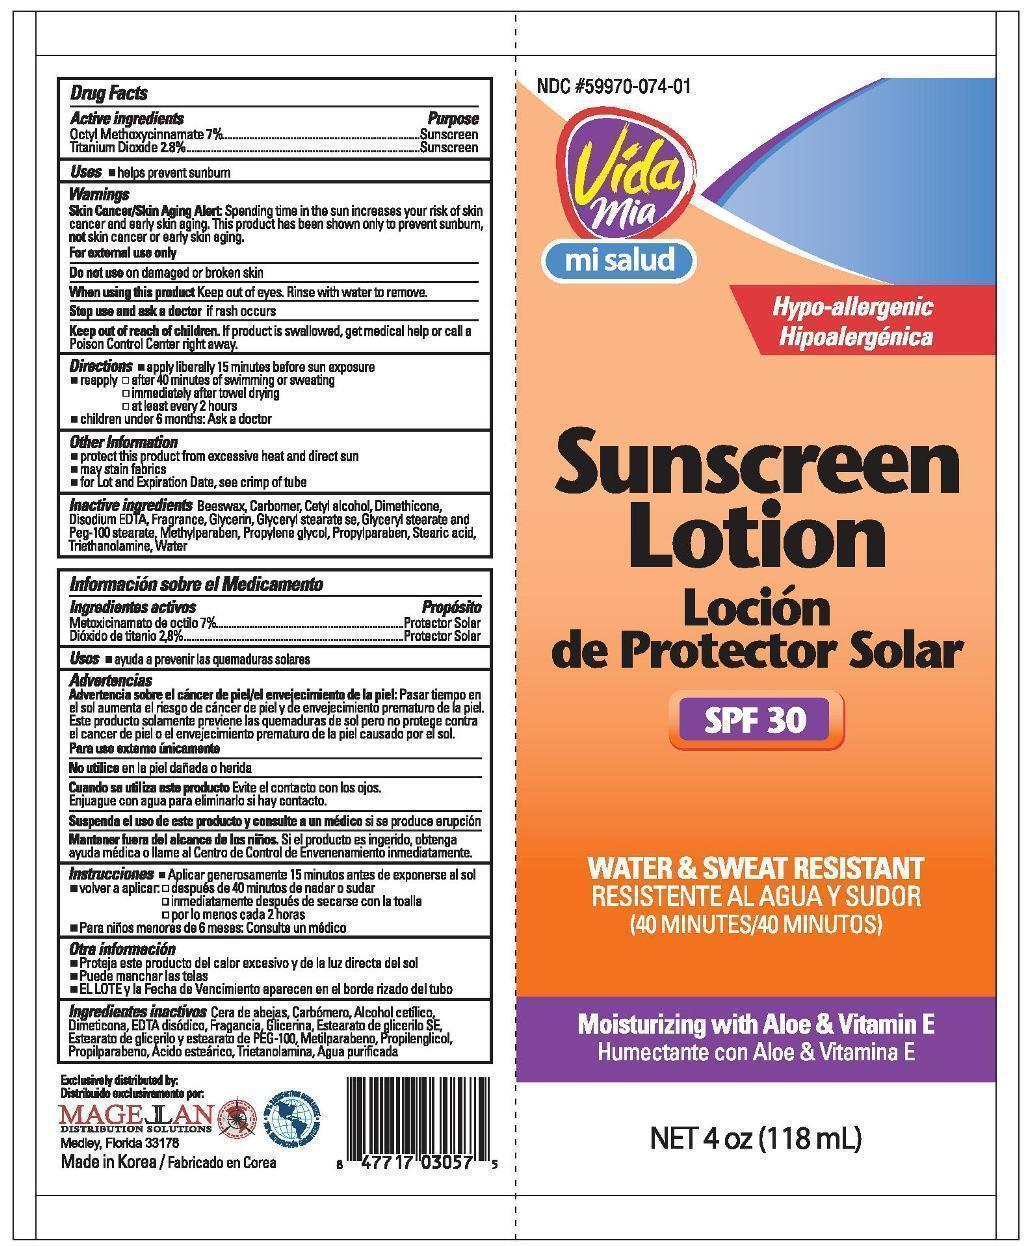 image of sunscreen tube